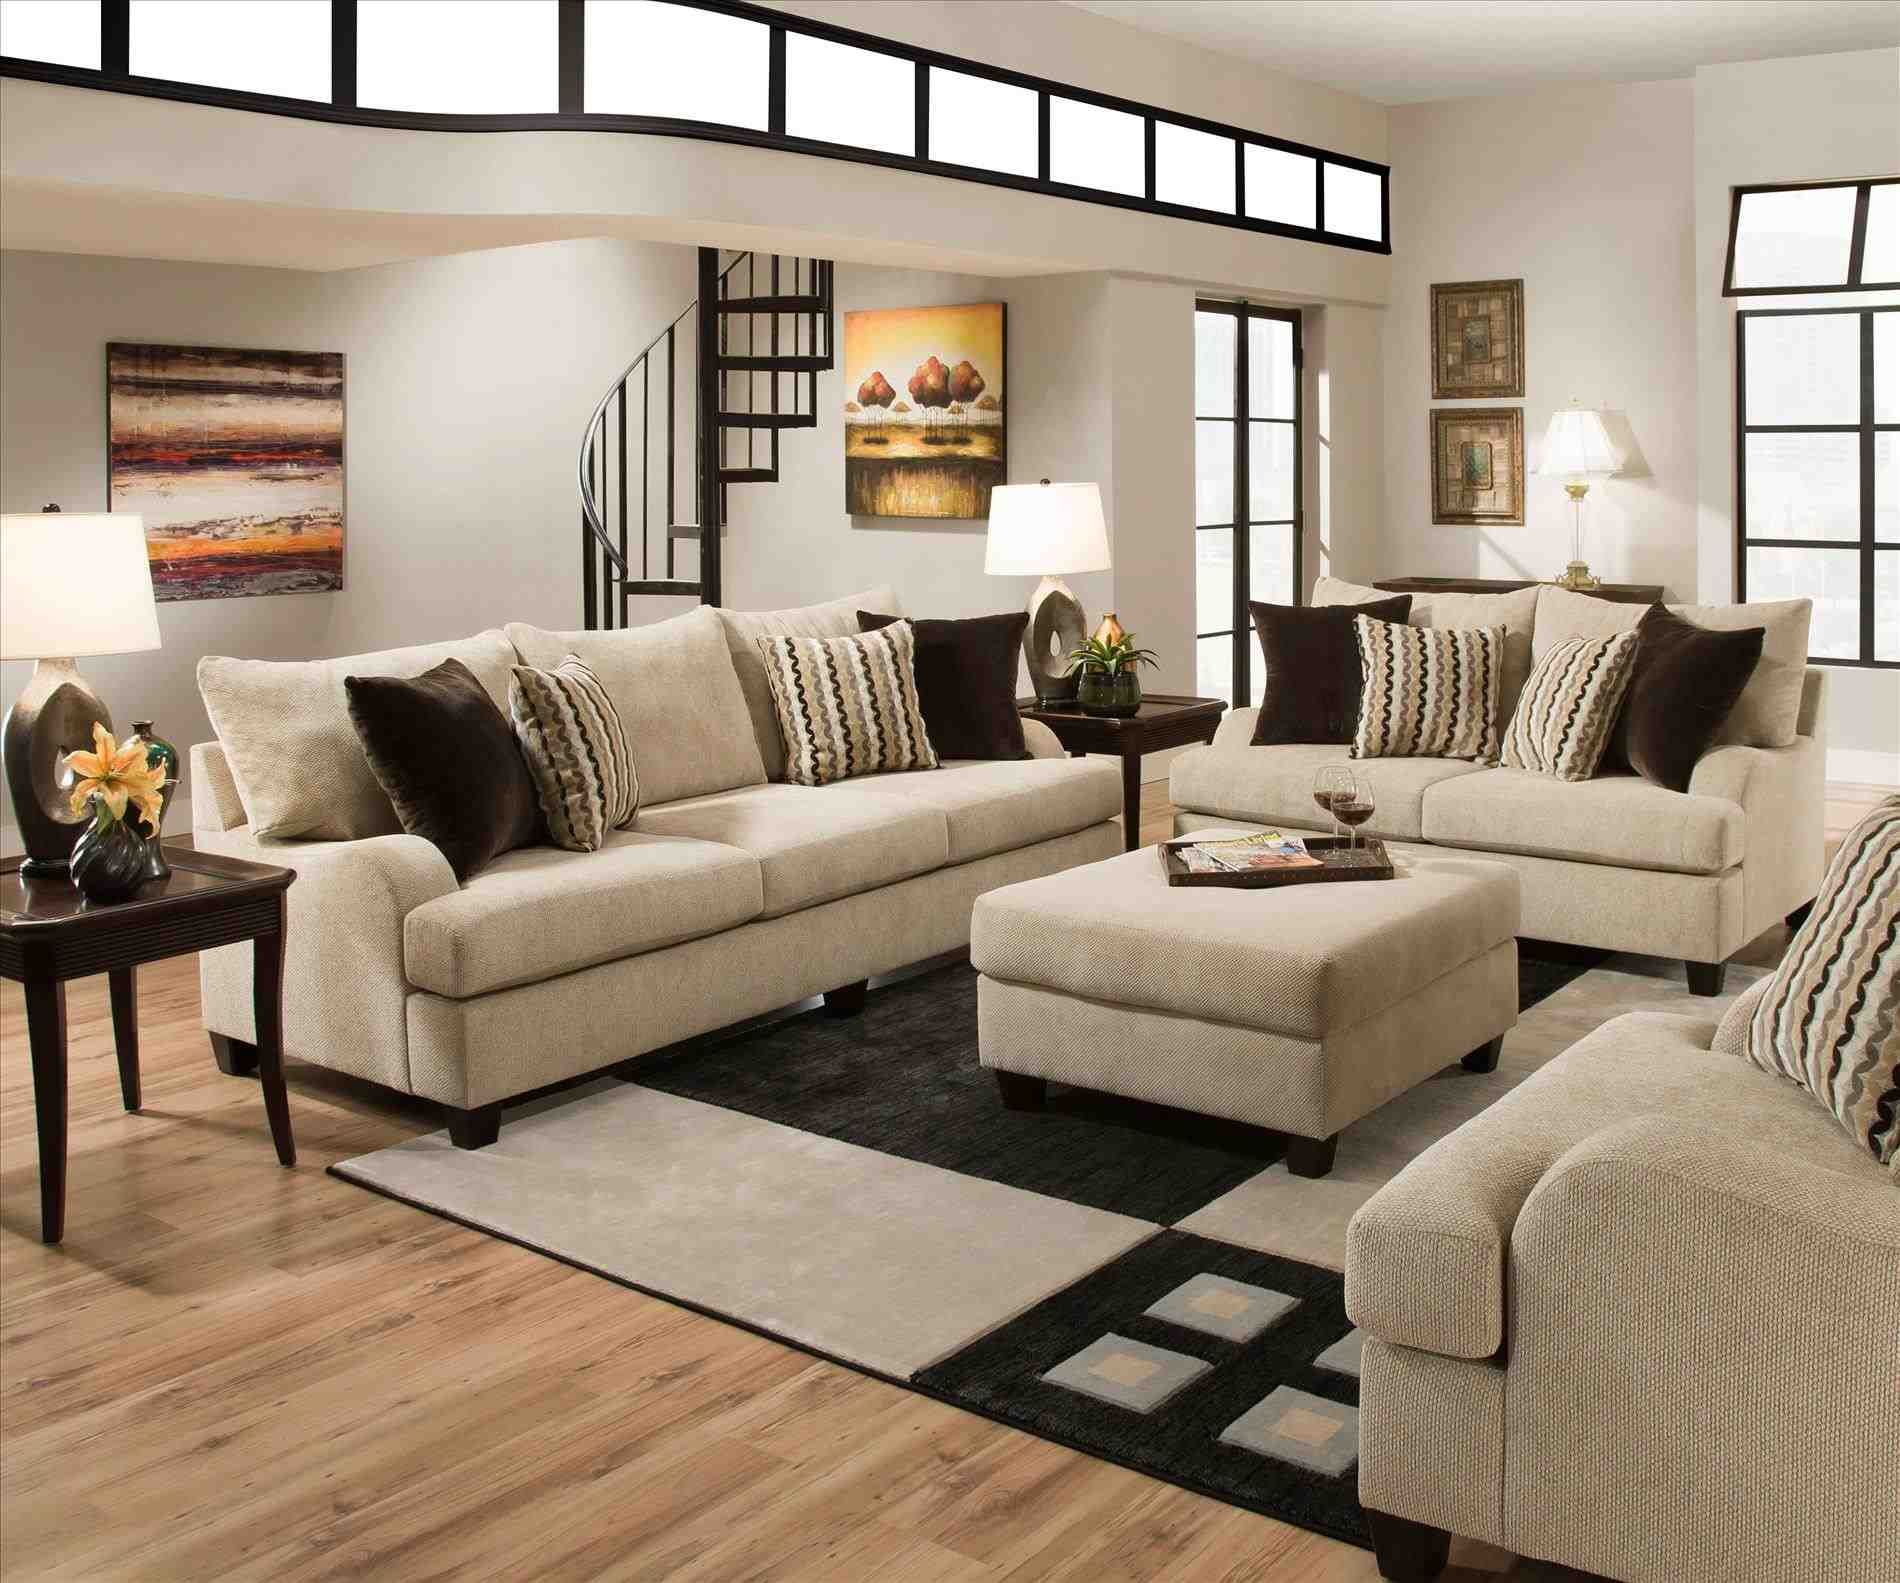 Living Room Furniture Ideas Nice Simple